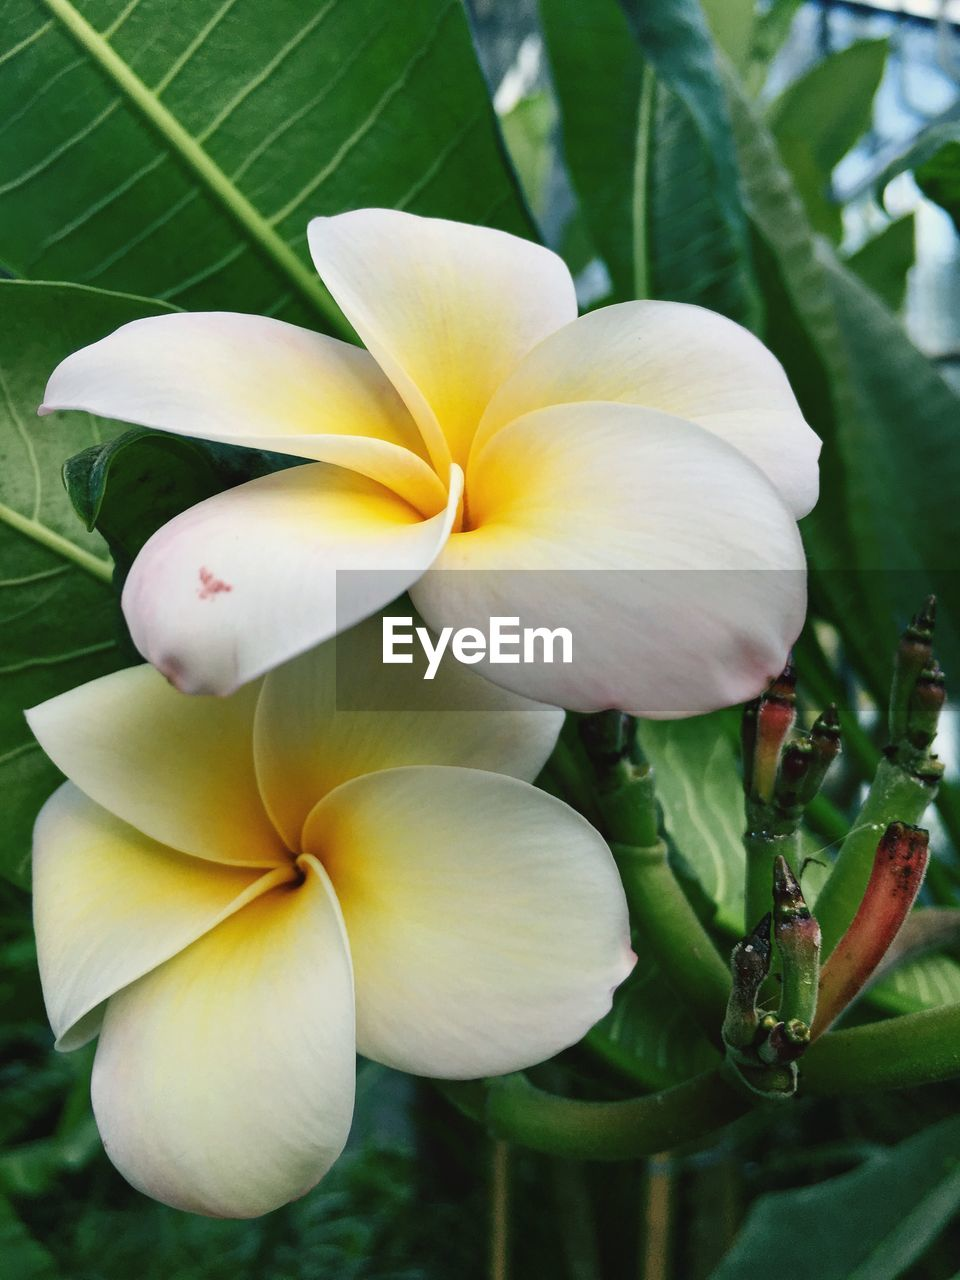 flower, petal, fragility, growth, beauty in nature, flower head, freshness, plant, nature, blooming, no people, leaf, close-up, outdoors, day, frangipani